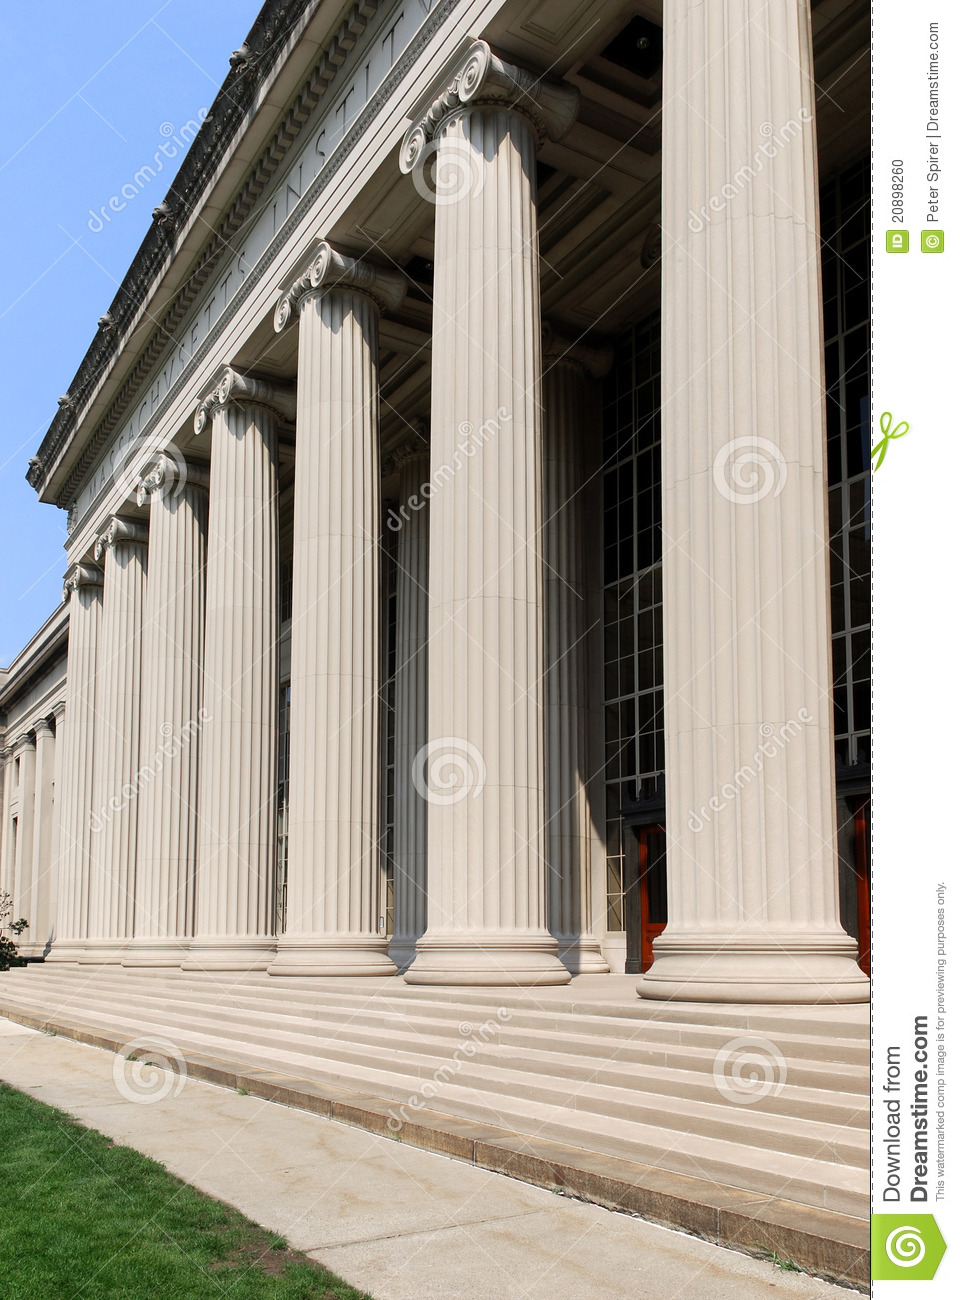 Massachusetts Institute Of Technology Stock Photo - Image: 20898260